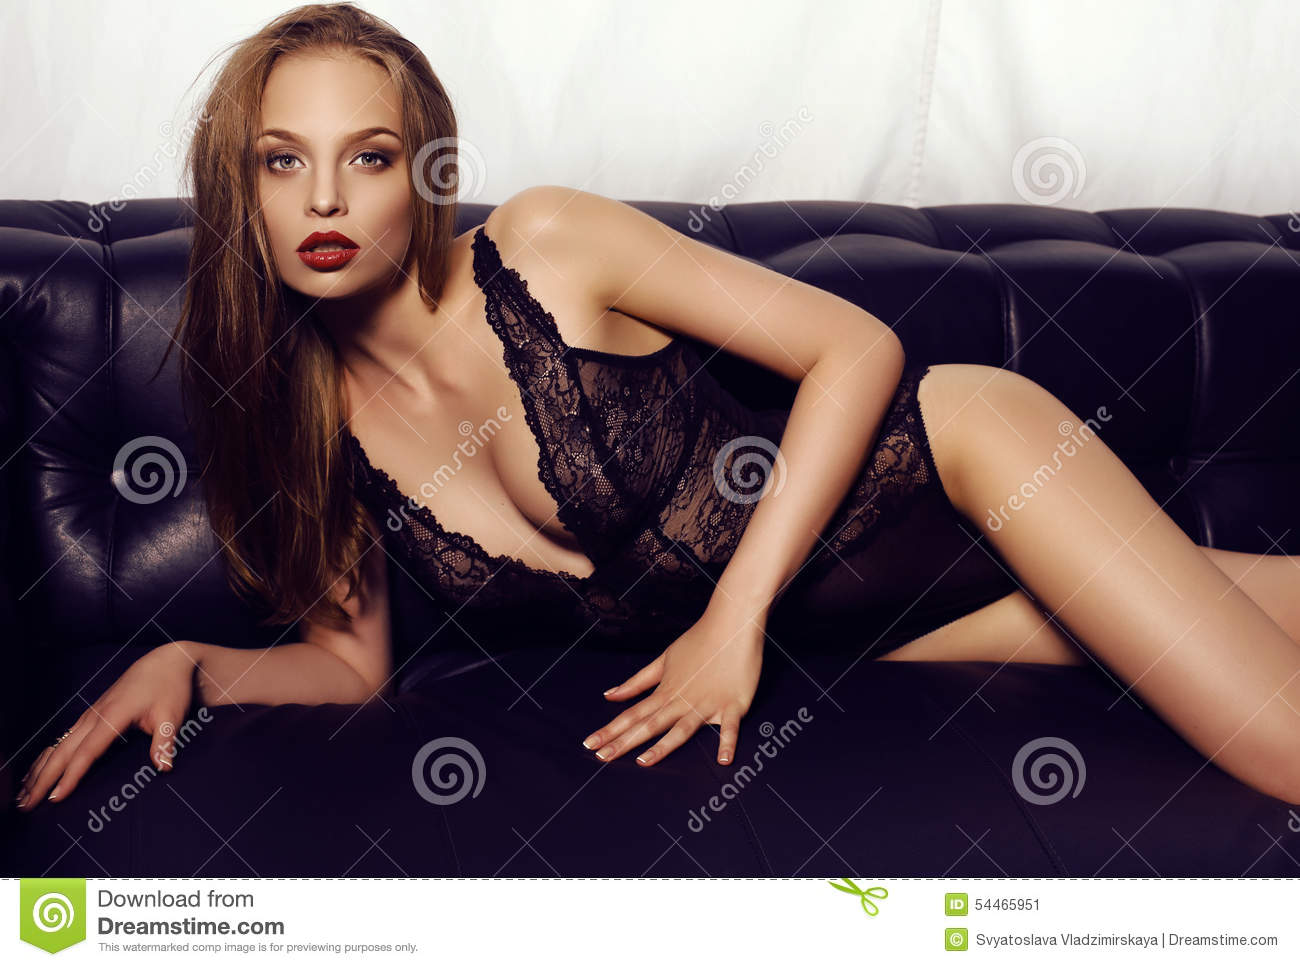 db6db4b15a0e Fashion studio photo of beautiful sensual girl with long dark hair wearing  luxurious lace lingerie, lying on black leather divan